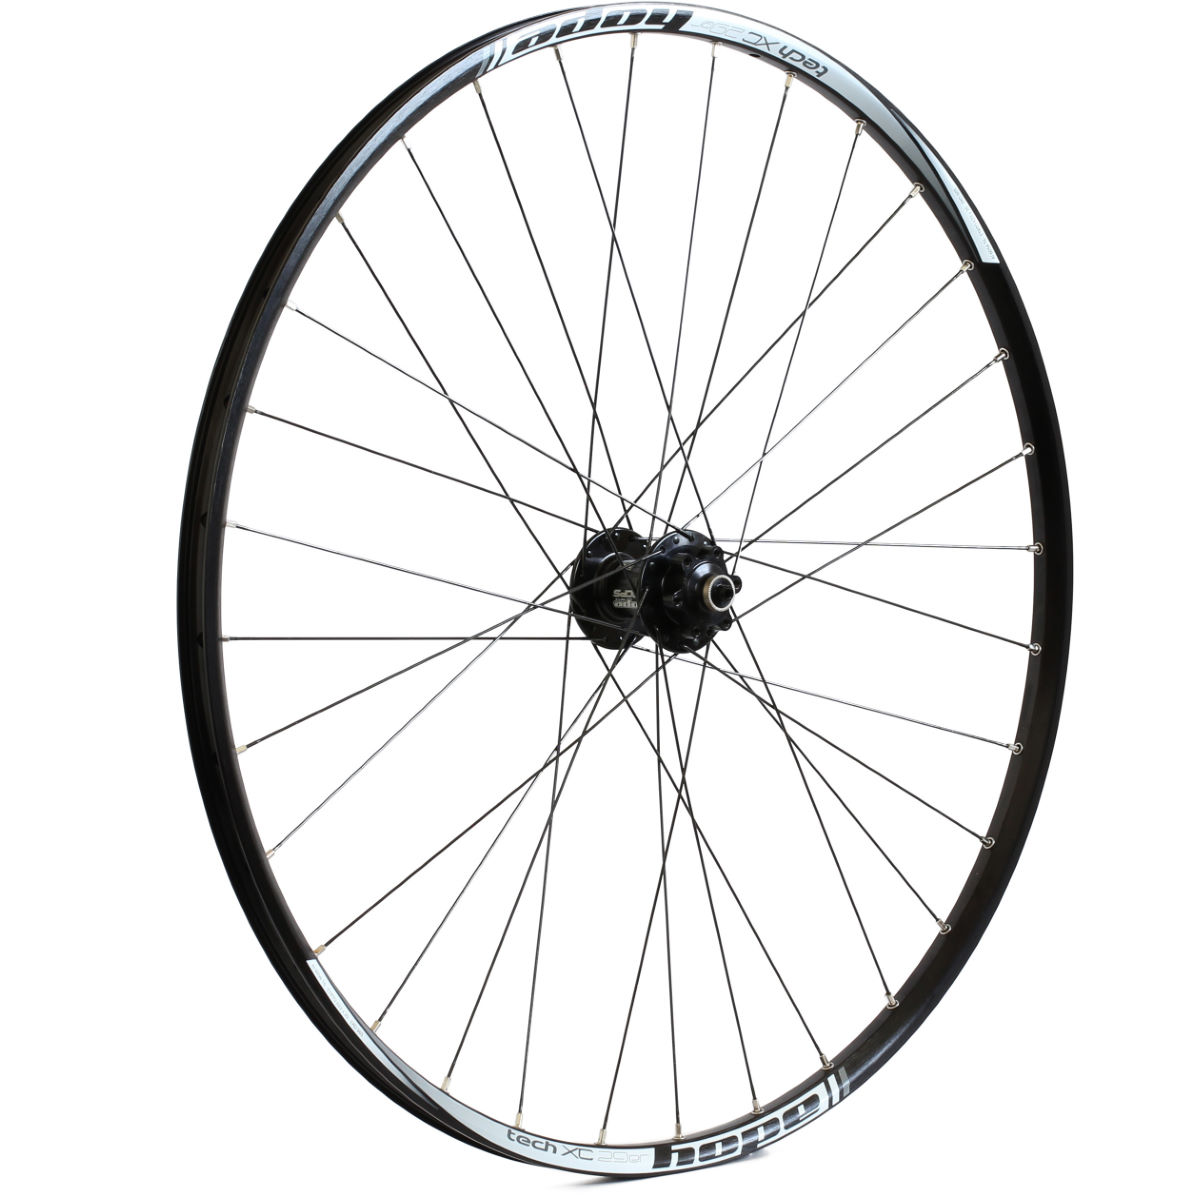 Roue avant VTT Hope Pro 4 Tech XC - 29'' n/a 110mm Rouge